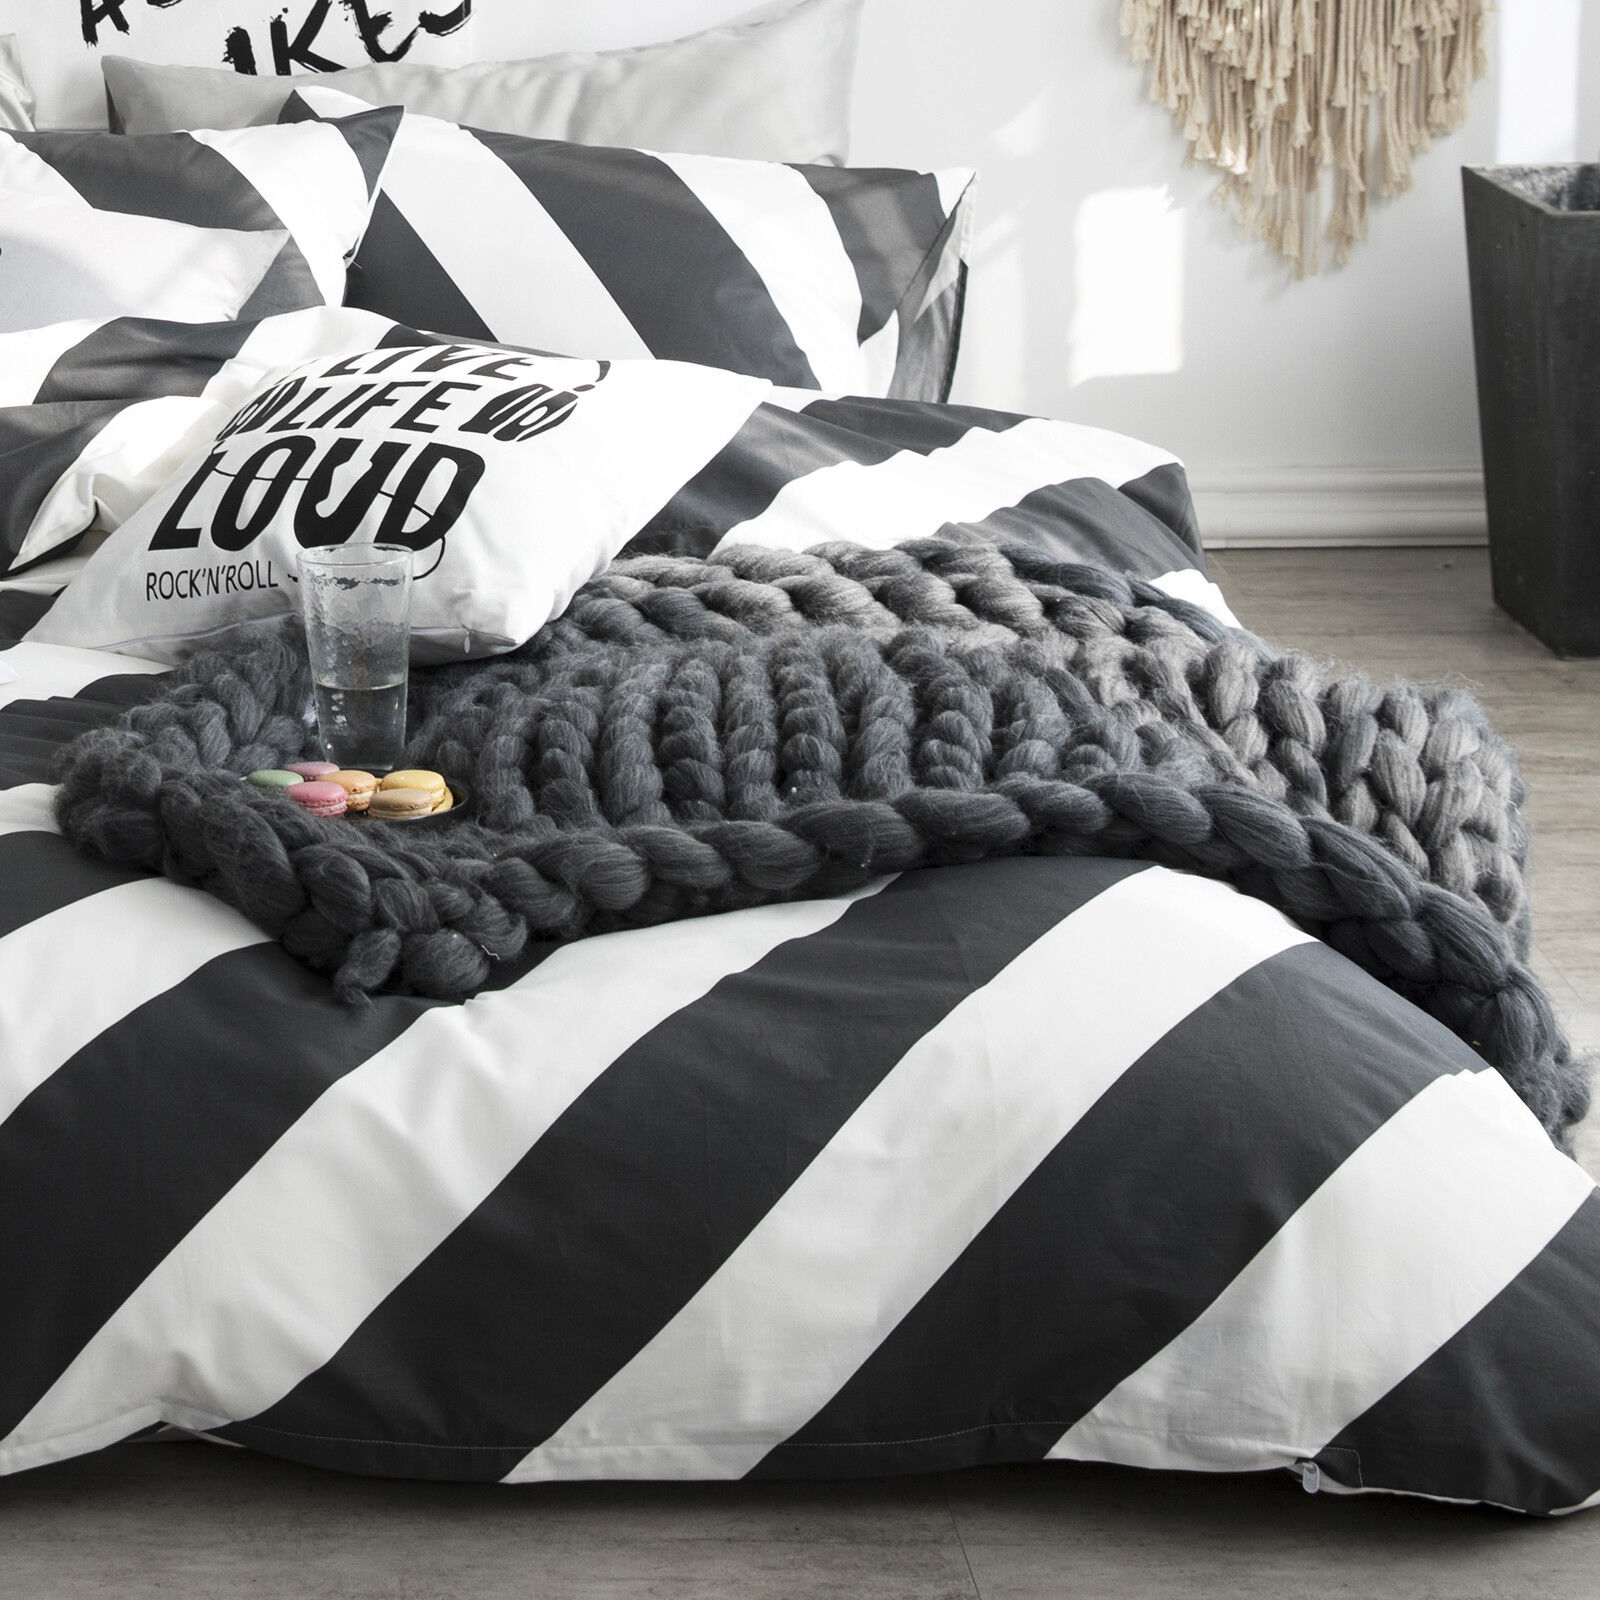 100 Cotton Black White Diagonal Stripe Duvet Cover Set Queen Bedding Set